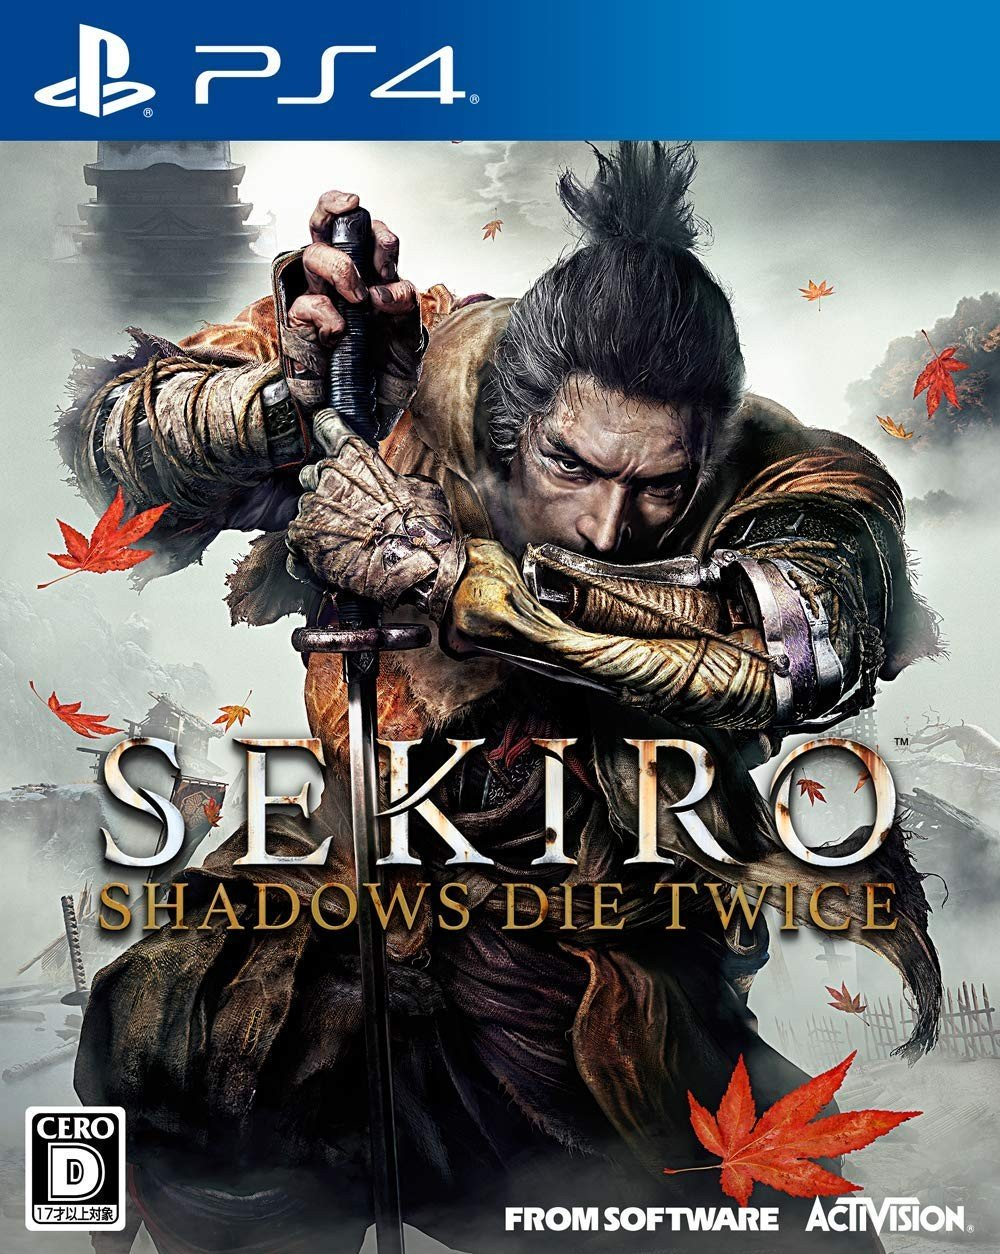 SEKIRO: SHADOWS DIE TWICE 隻狼:影逝二度